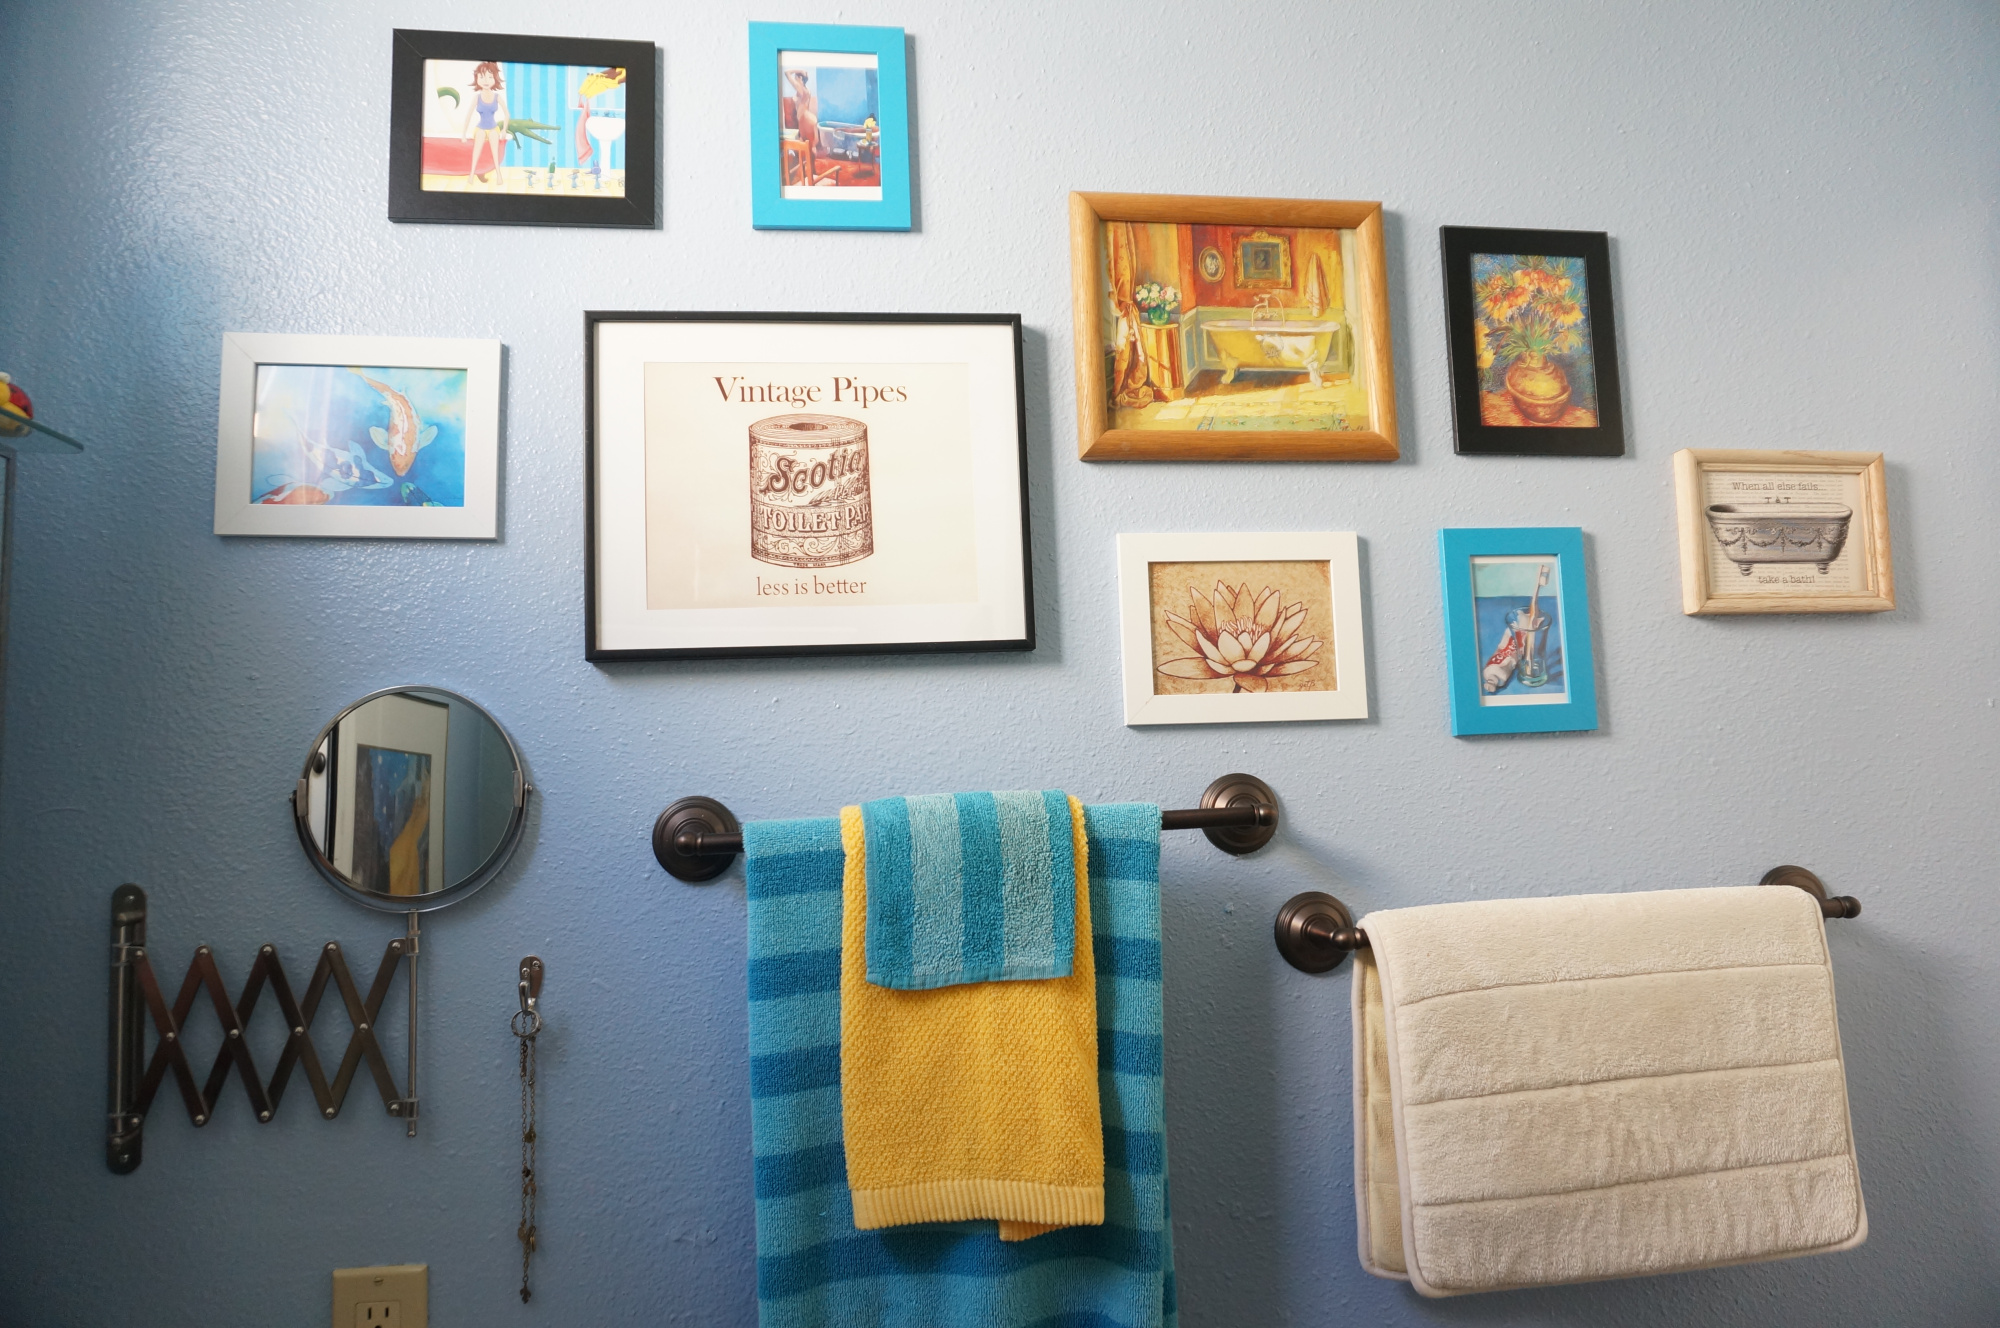 Artful small bathroom gallery wall.